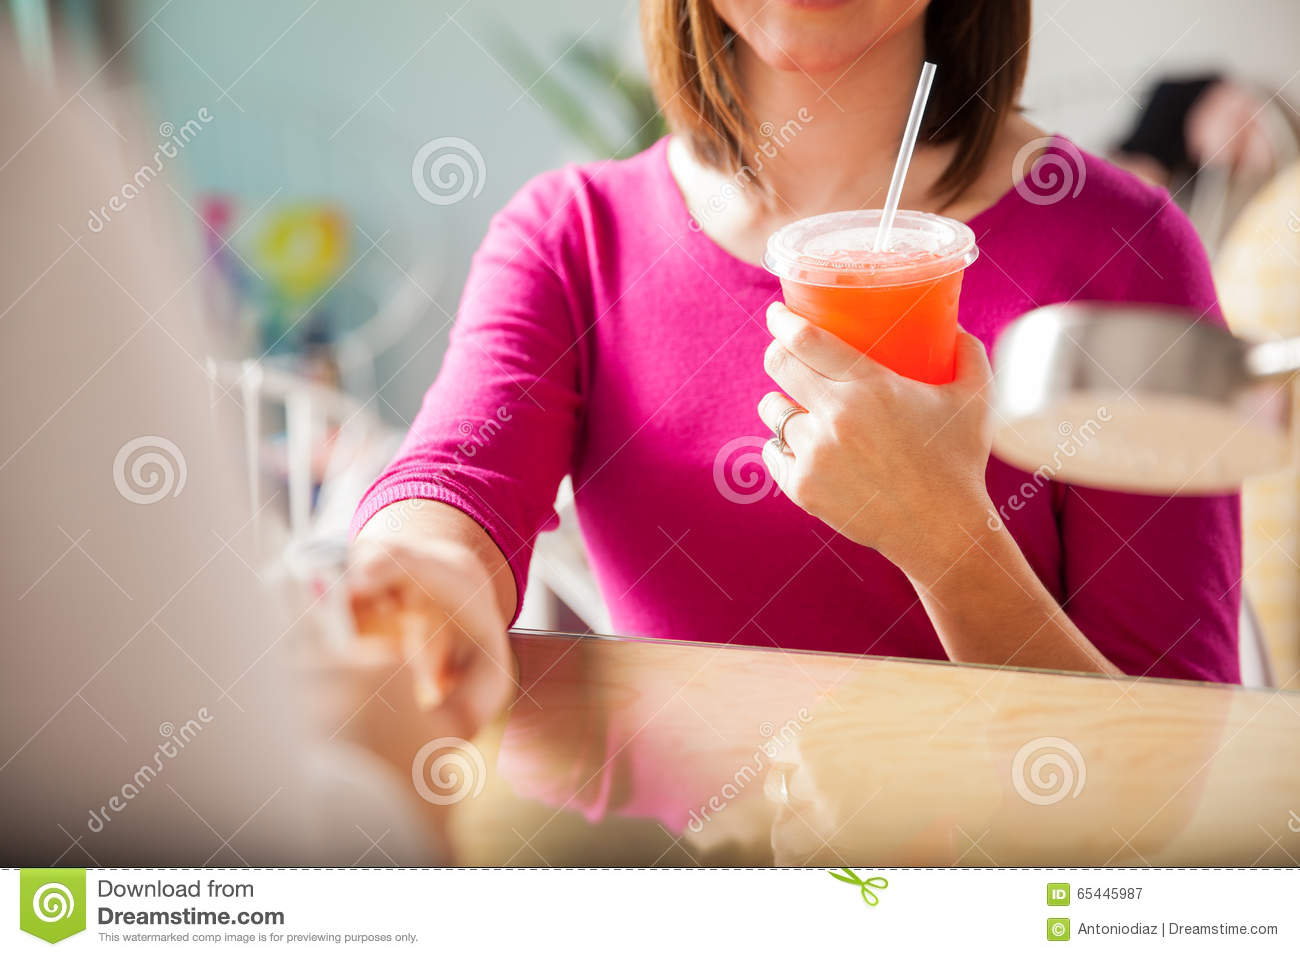 Free Drinks At A Nail Salon Stock Image - Image of client, salon ...